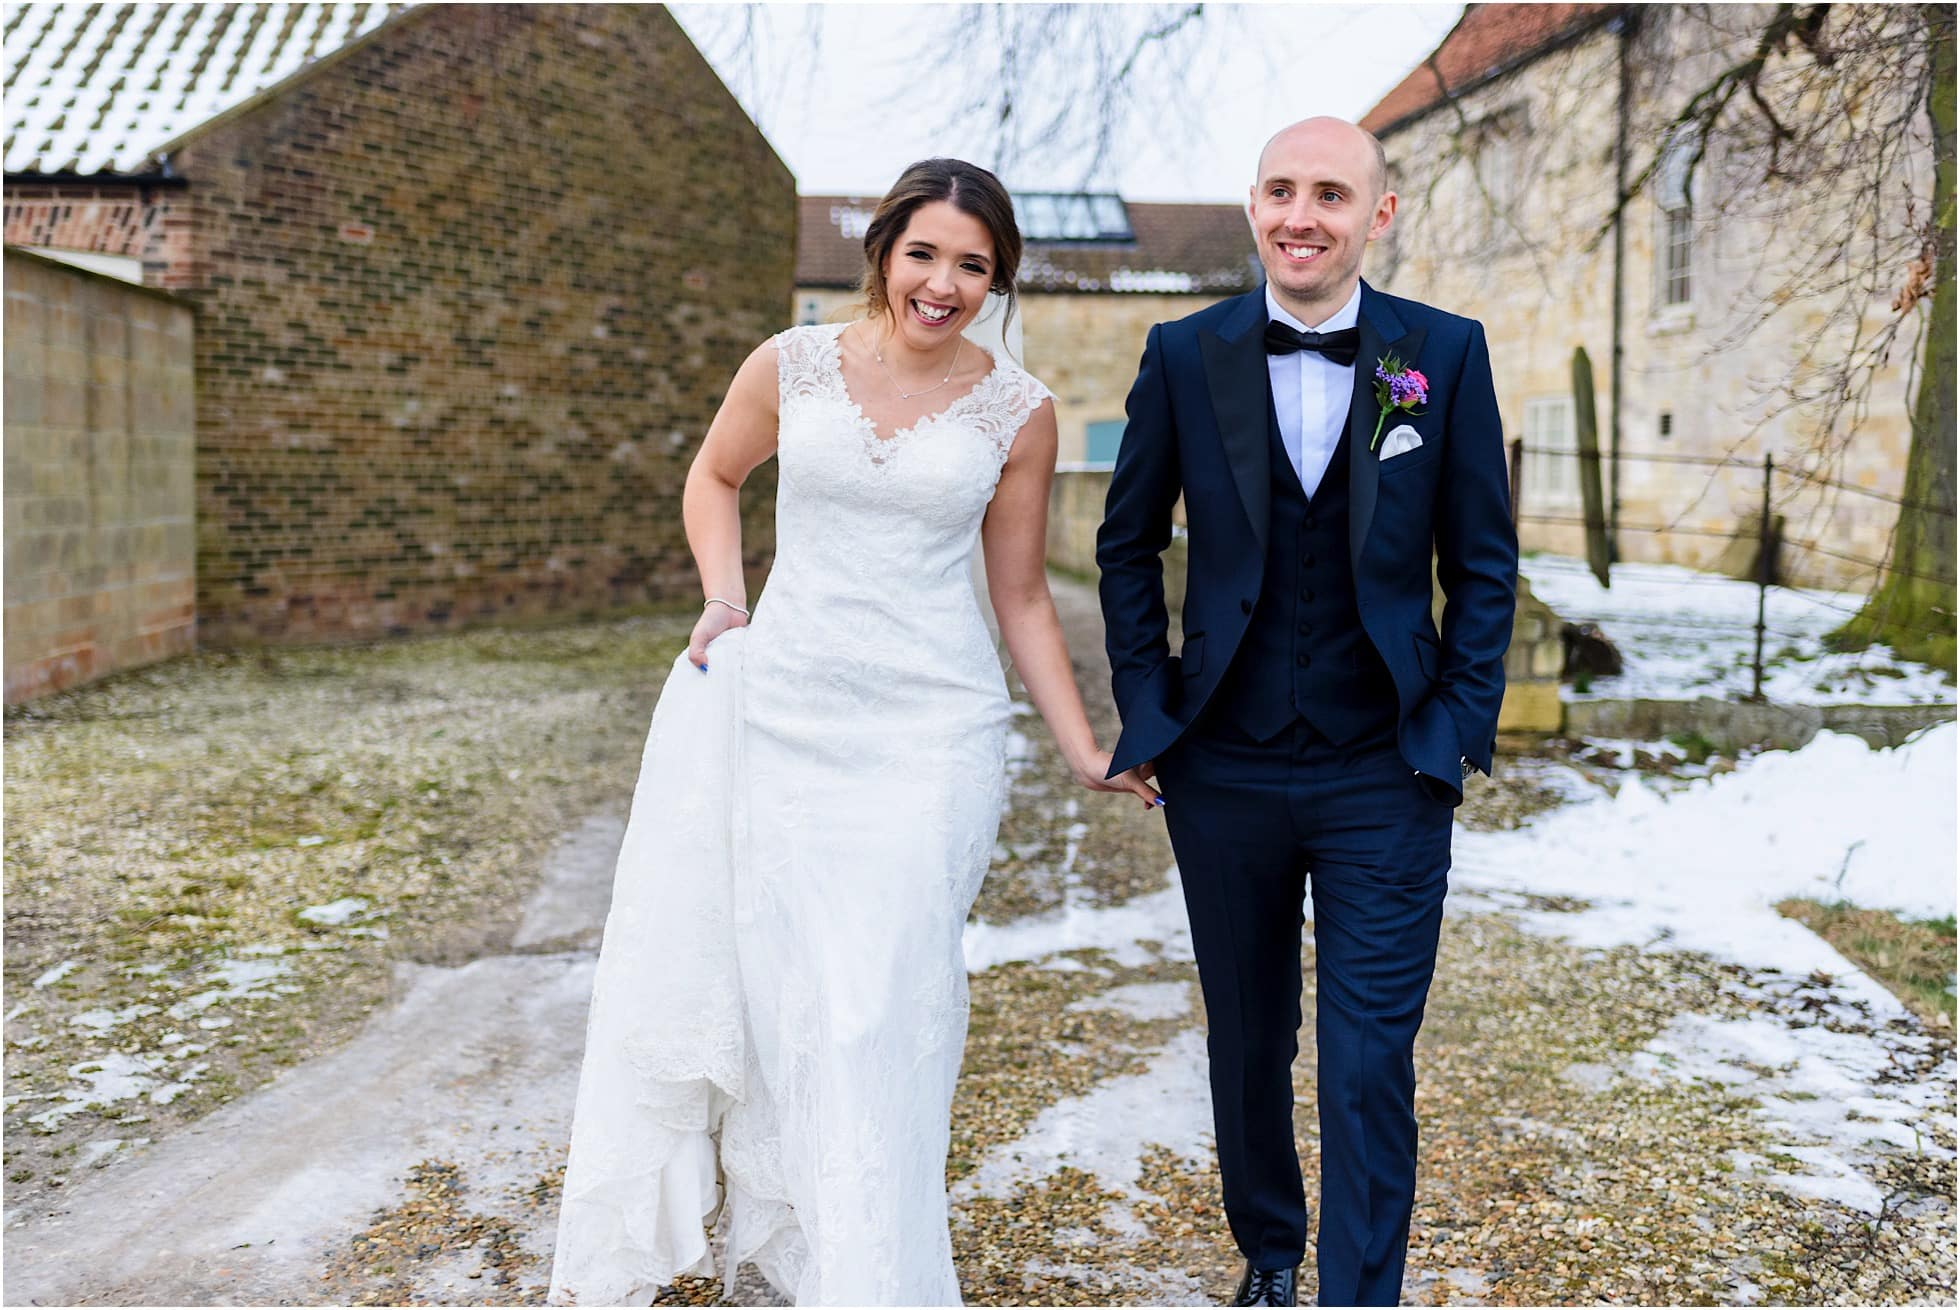 Natural unposed wedding photographer shot of bride and groom in winter